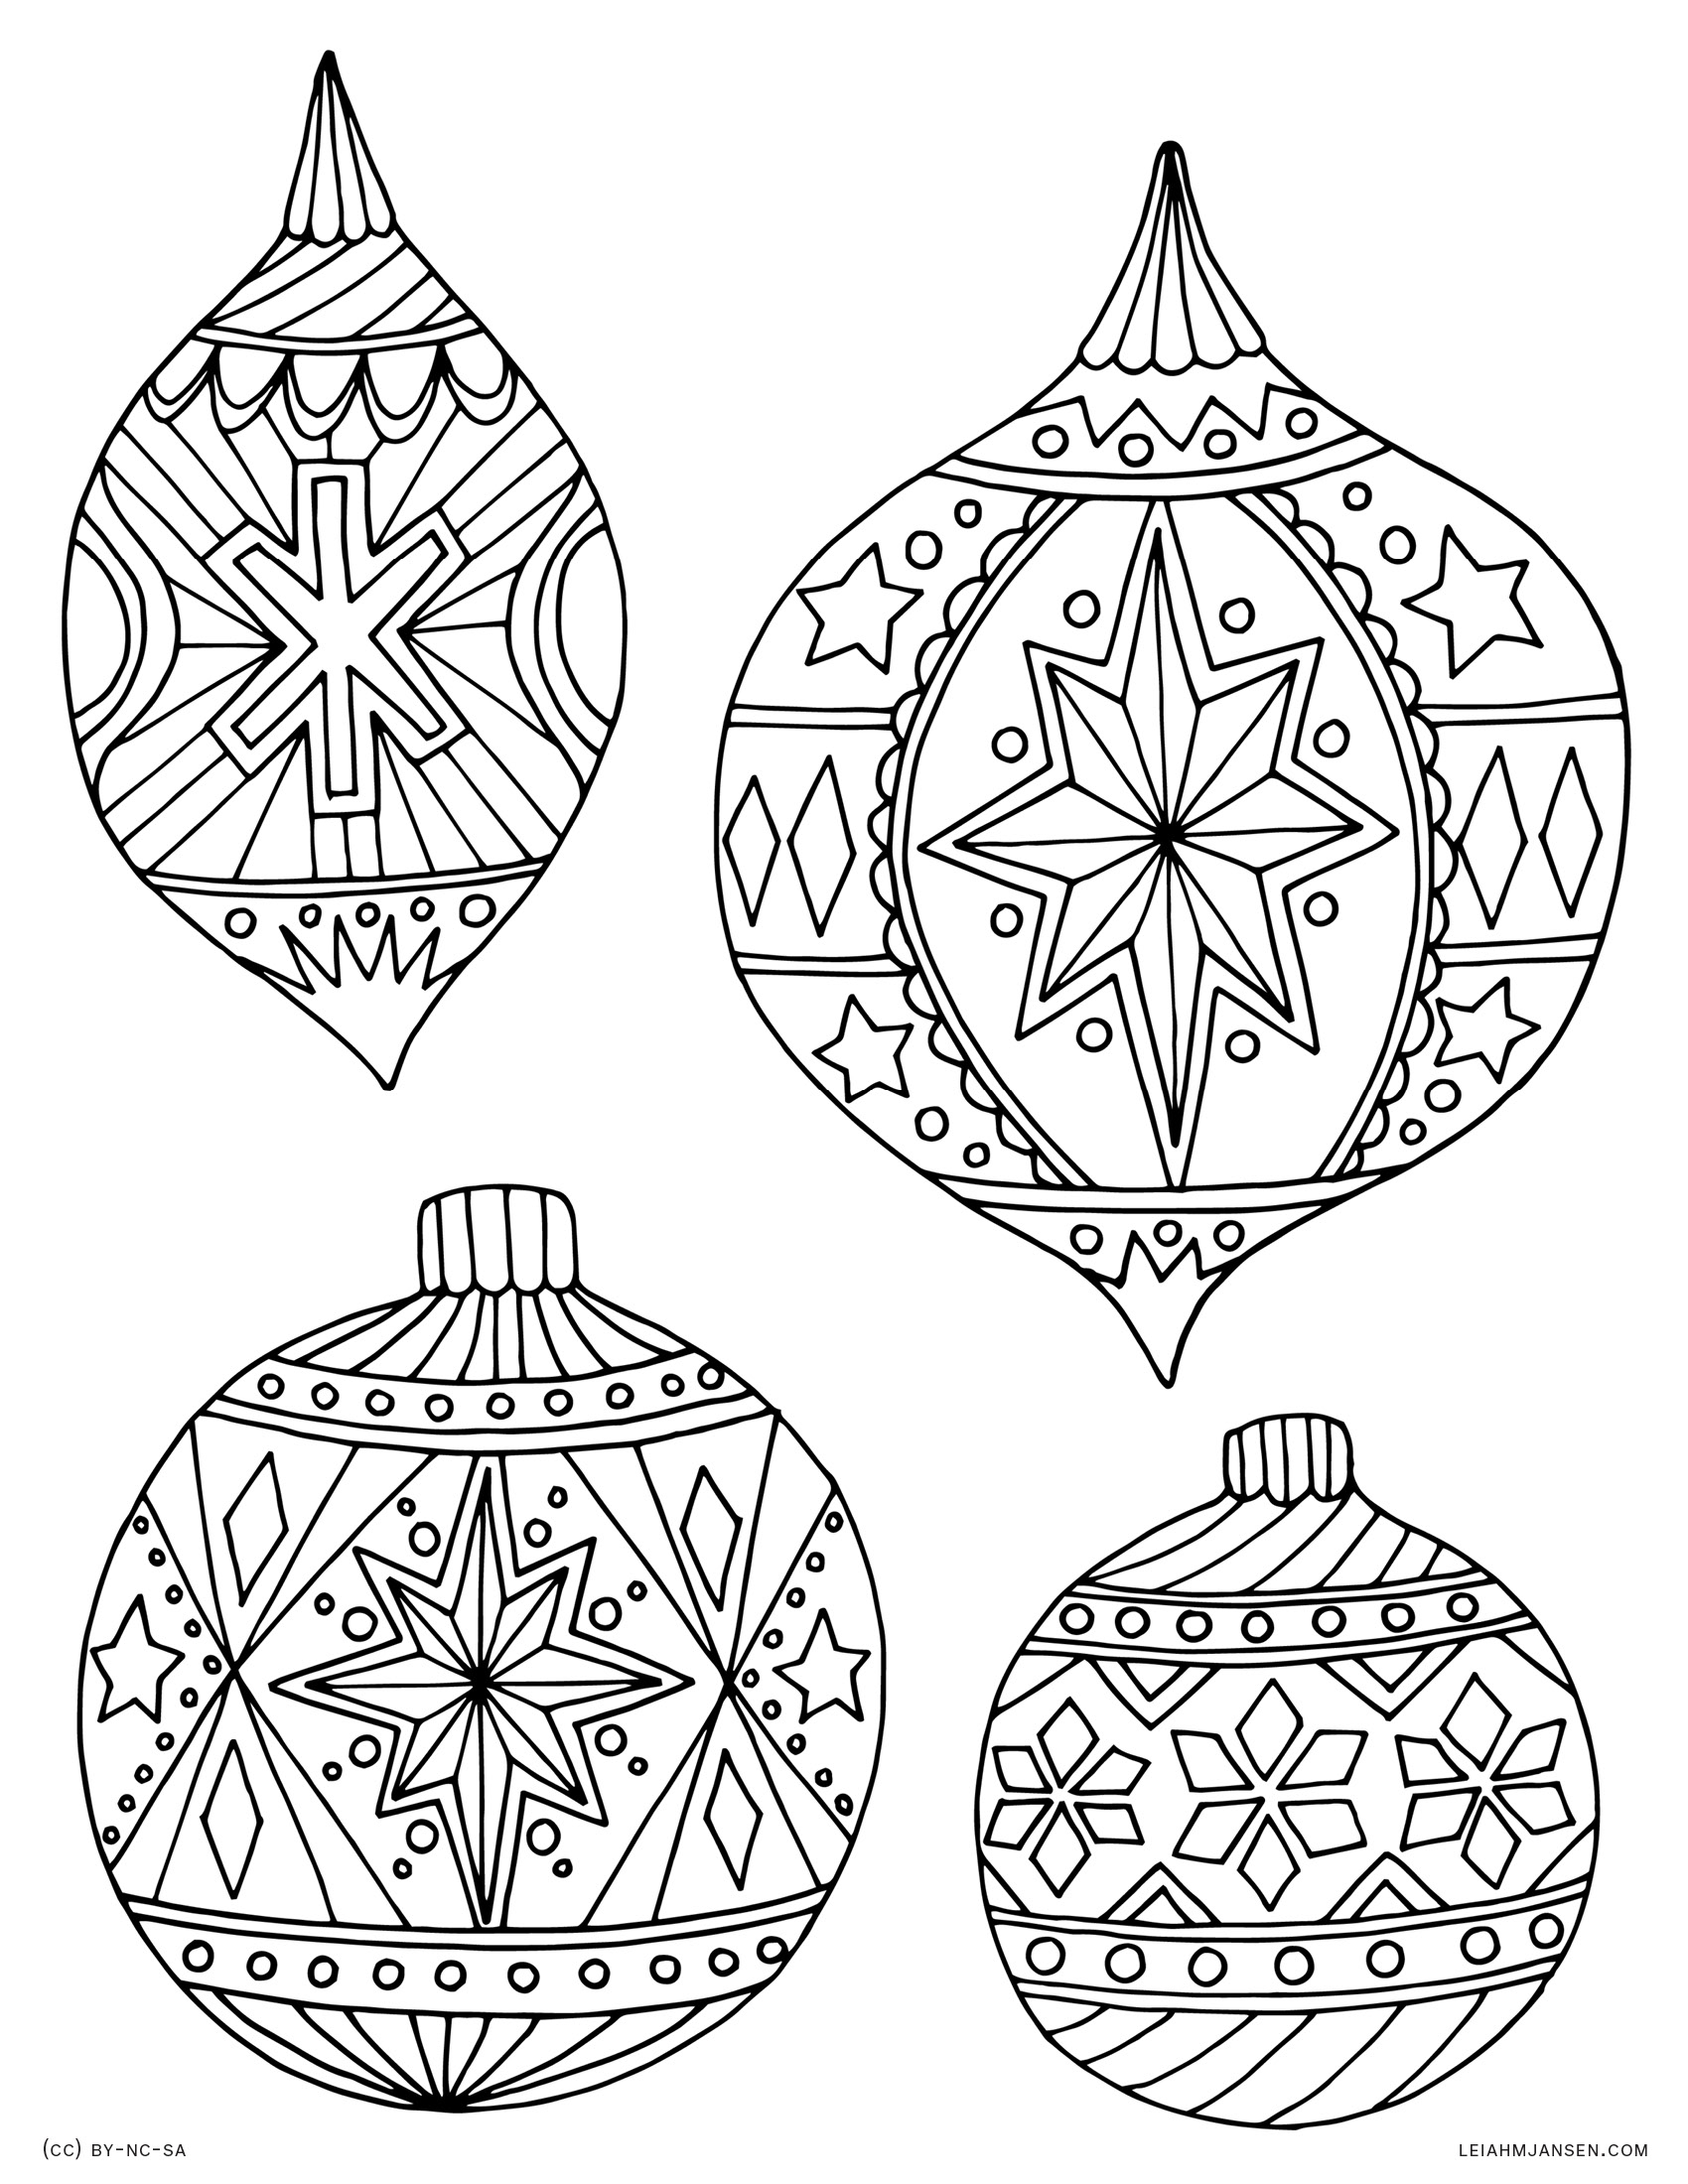 30+ Creative Image of Holiday Coloring Pages